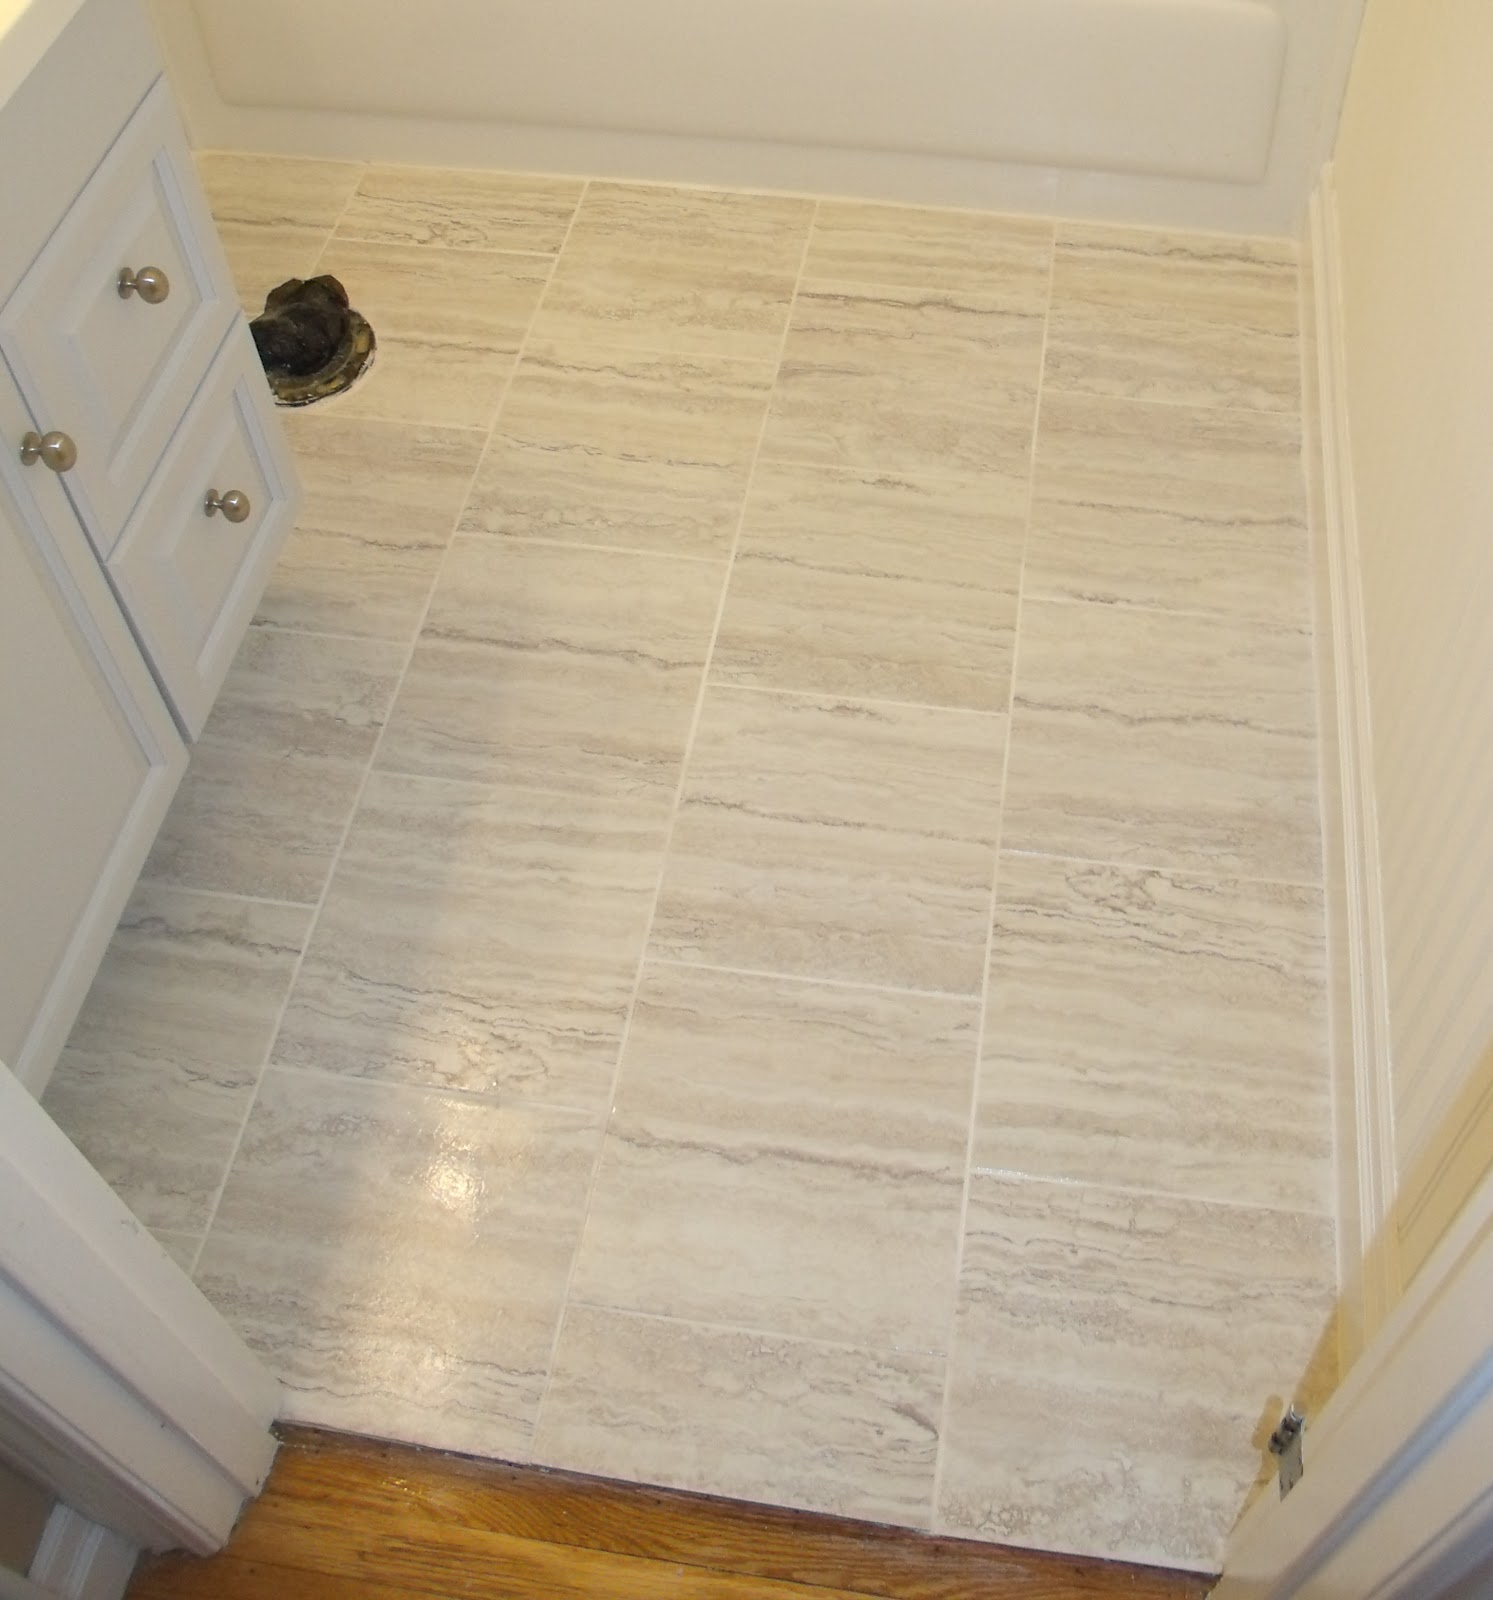 Bathroom Floor Tile Grout - l Wall Decal